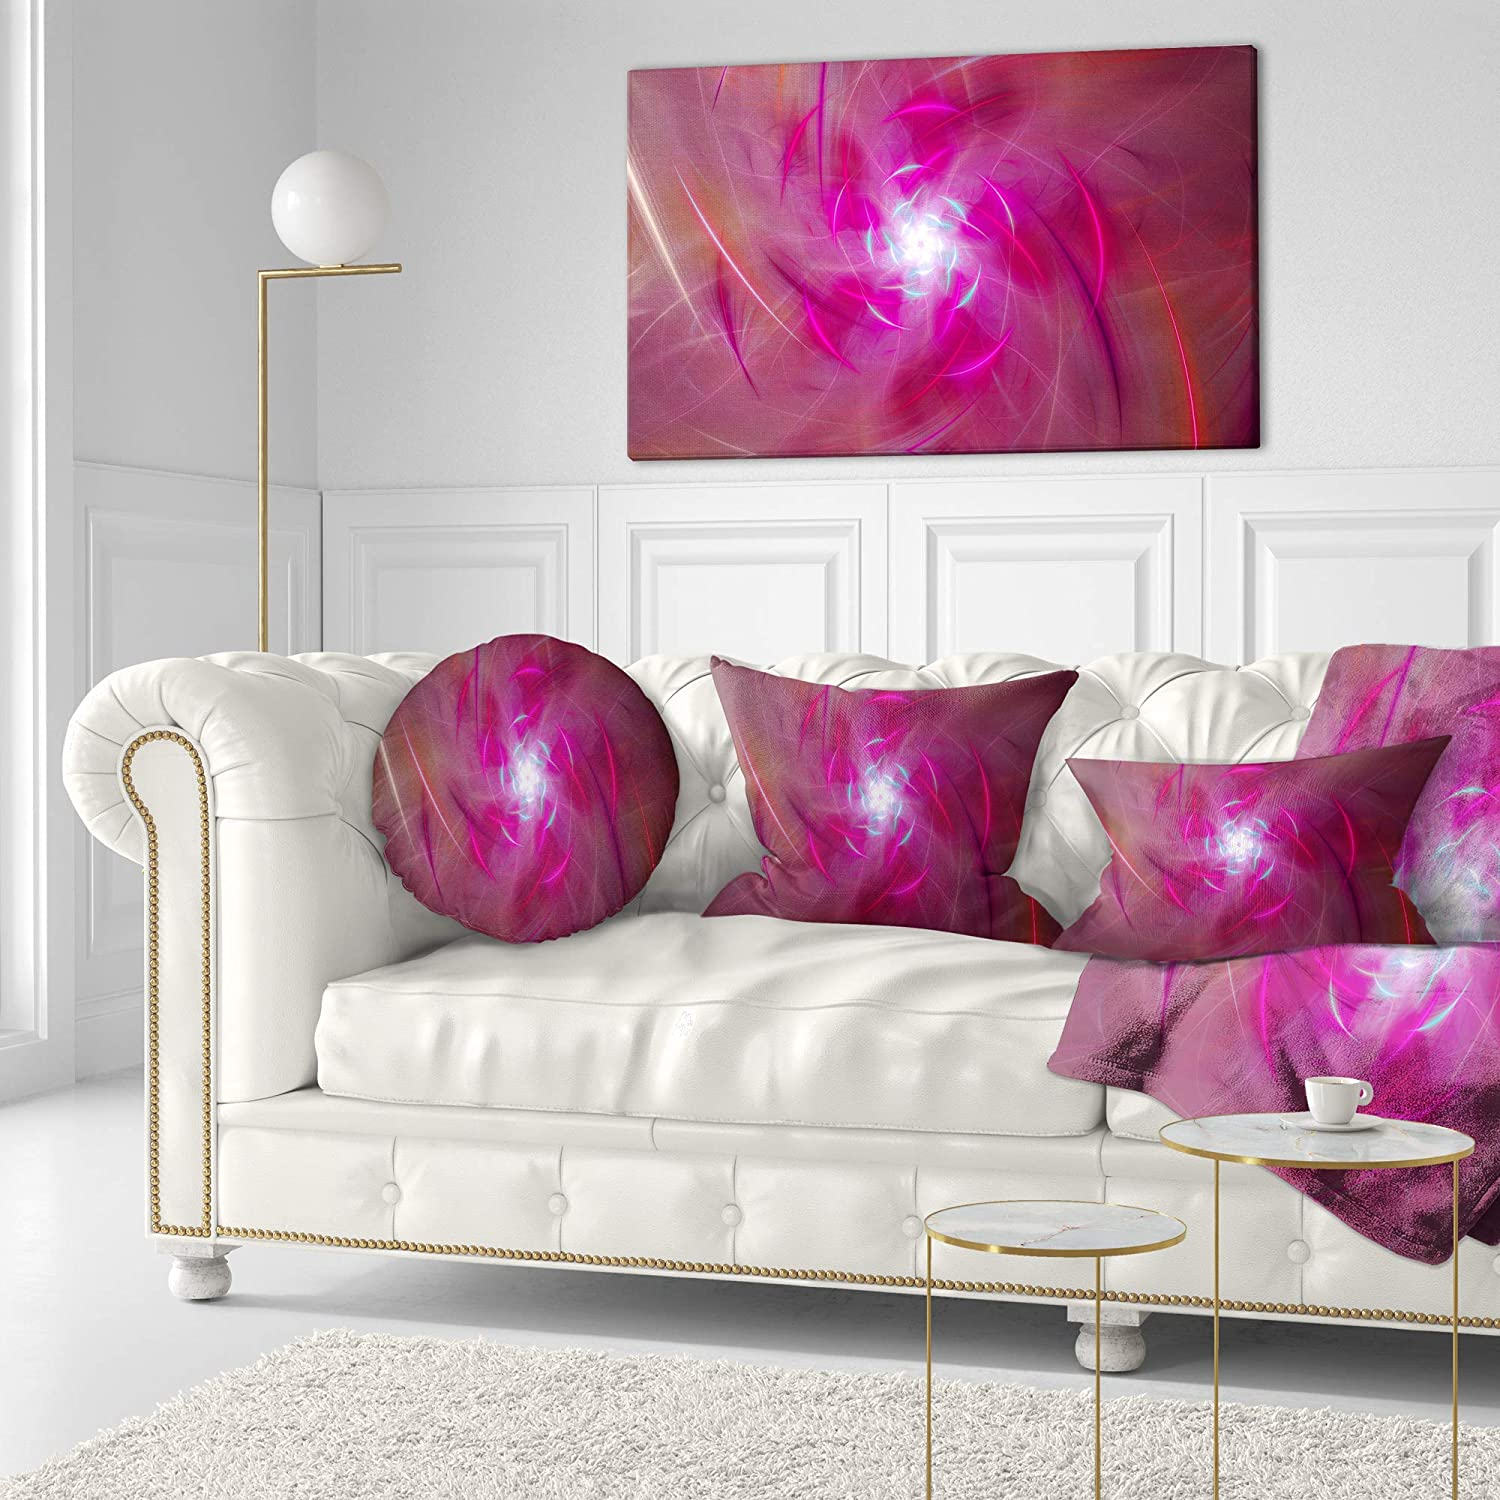 Pillow Insert Designart CU16005-20-20-C Pink Fractal Whirlpool Design Abstract Throw Cushion Pillow Cover for Living Room 20 Inches Round Sofa Cushion Cover Printed on Both Side